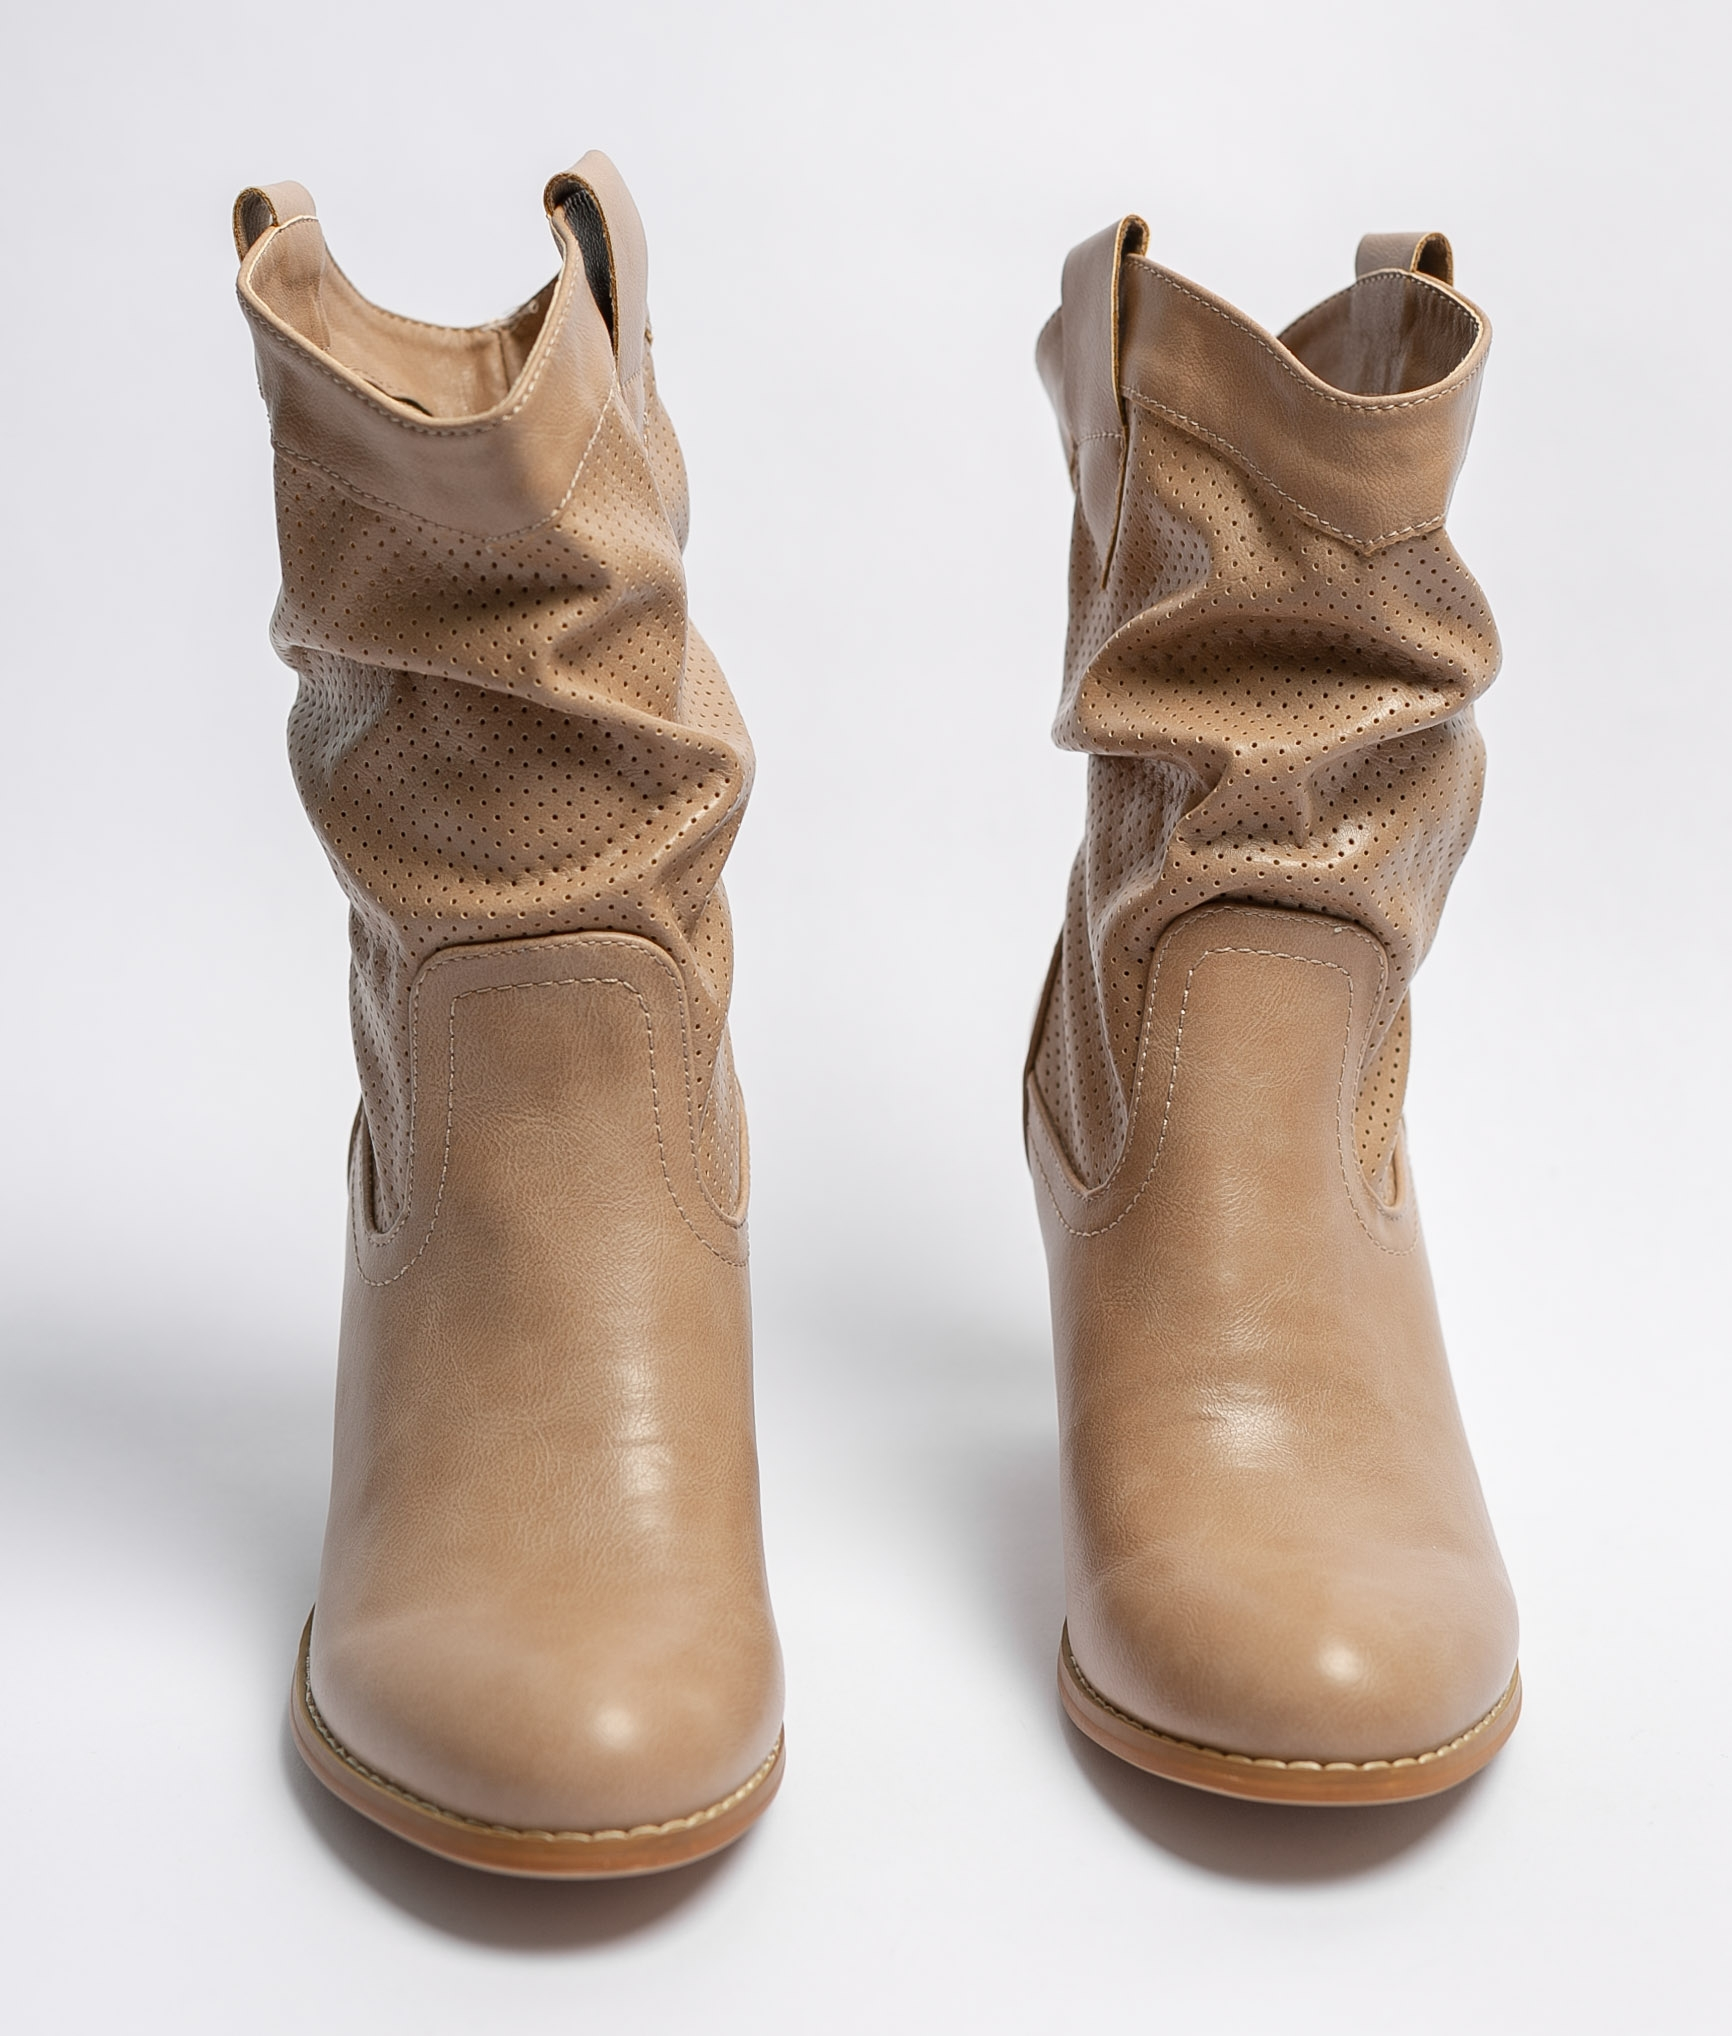 Ademia Low Boot - BEige